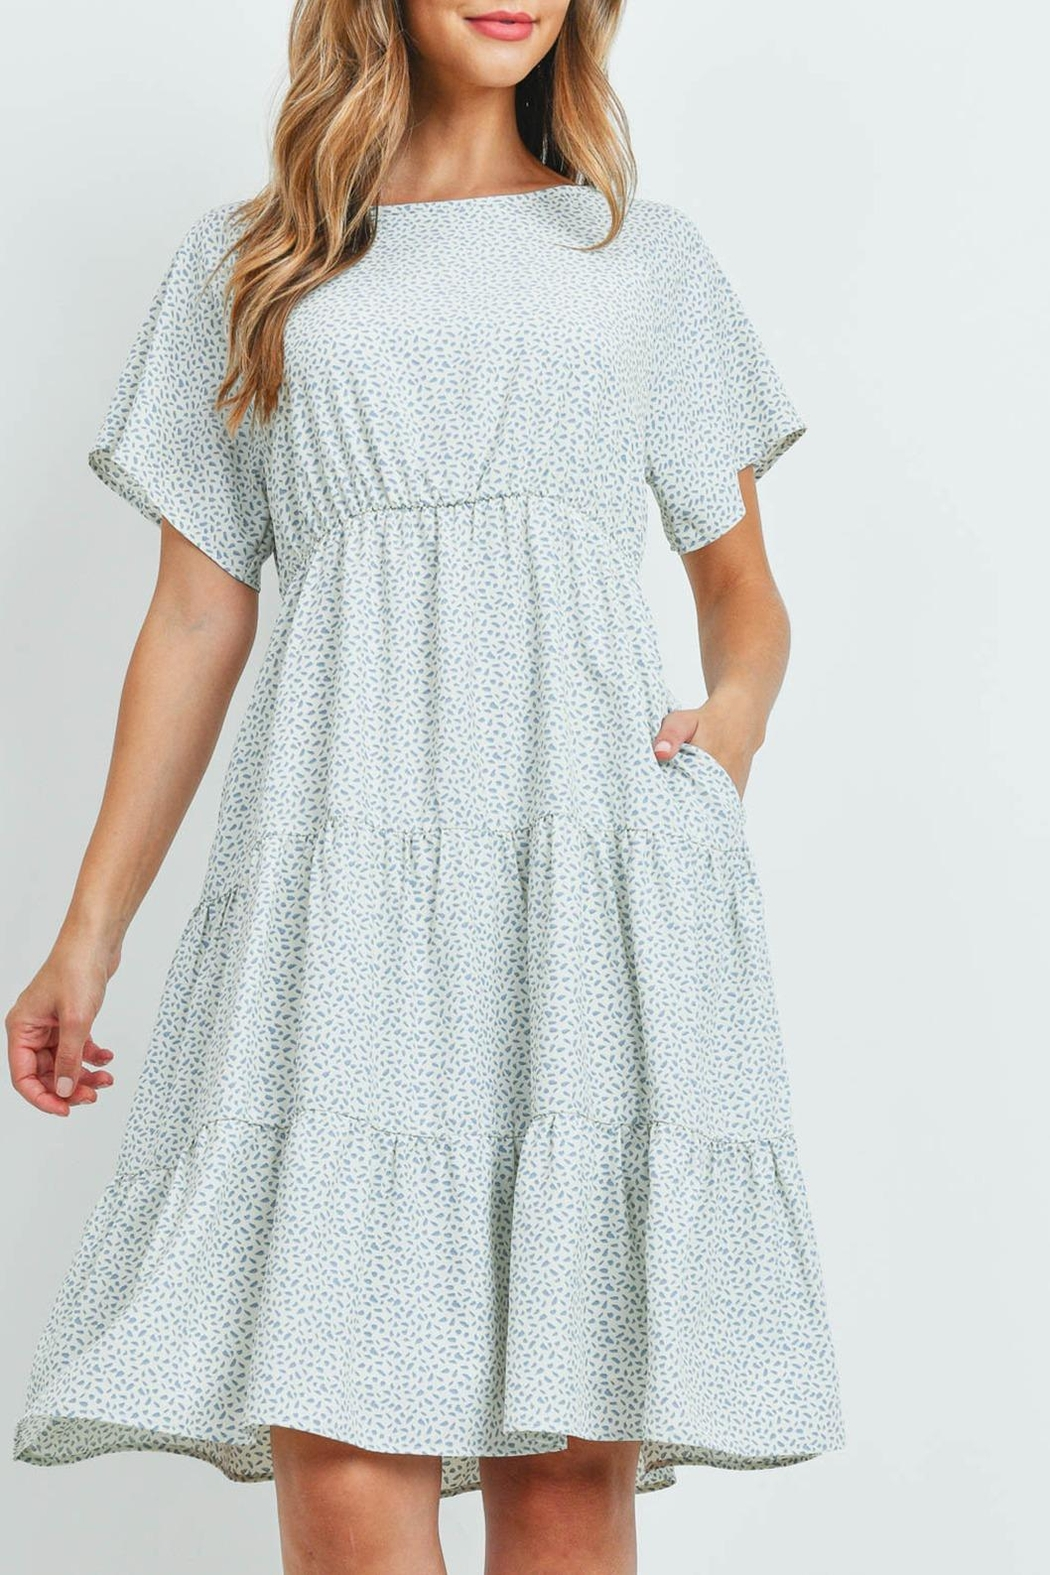 Riah Fashion Pebble-Print-Tiered-Ruffle-Dress - Front Cropped Image